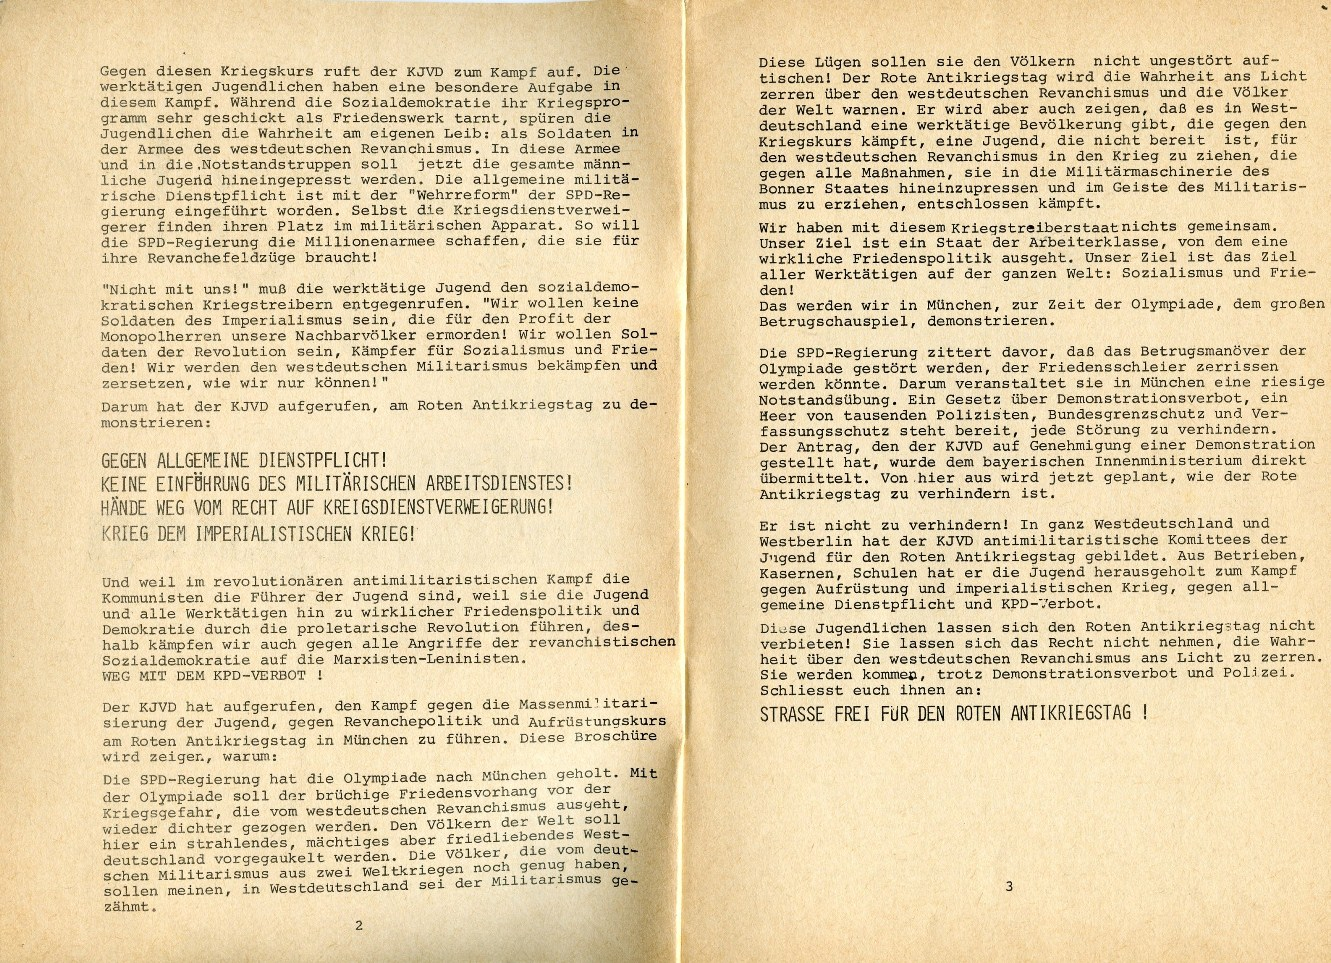 ZB_PBL_Roter_Antikriegstag_1972_03